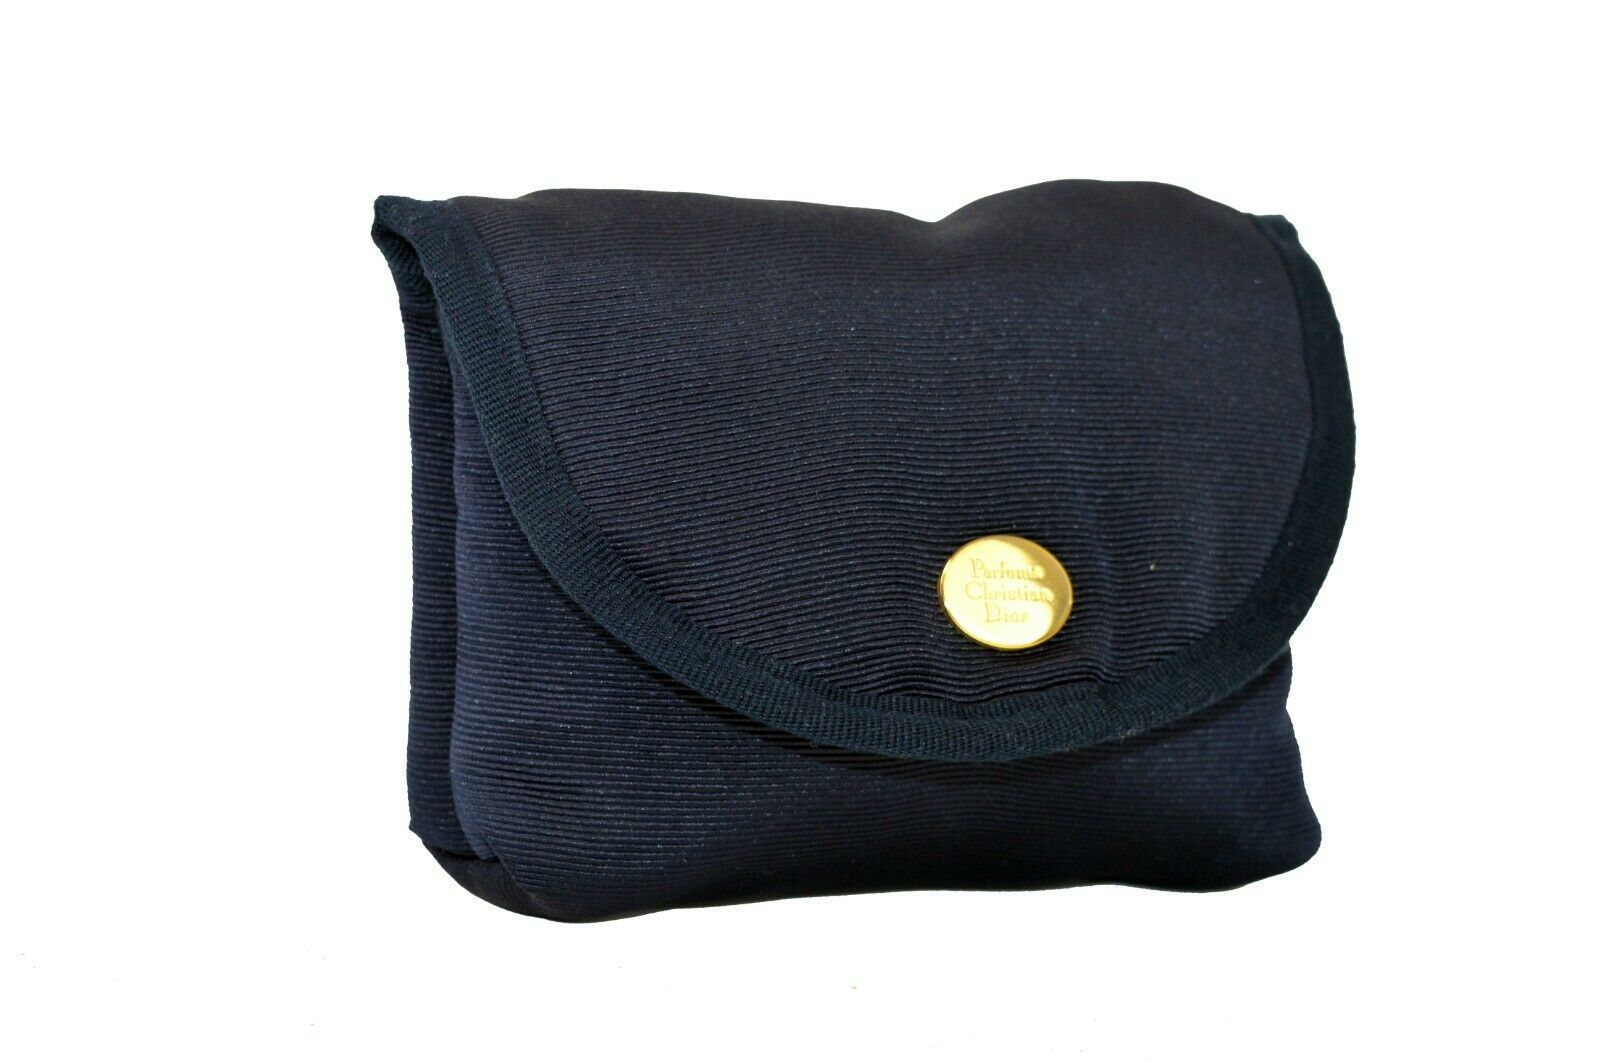 Christian Dior Parfums Logo Navy Small Pouch Make Up Case Small Bag Accessories  - $127.71